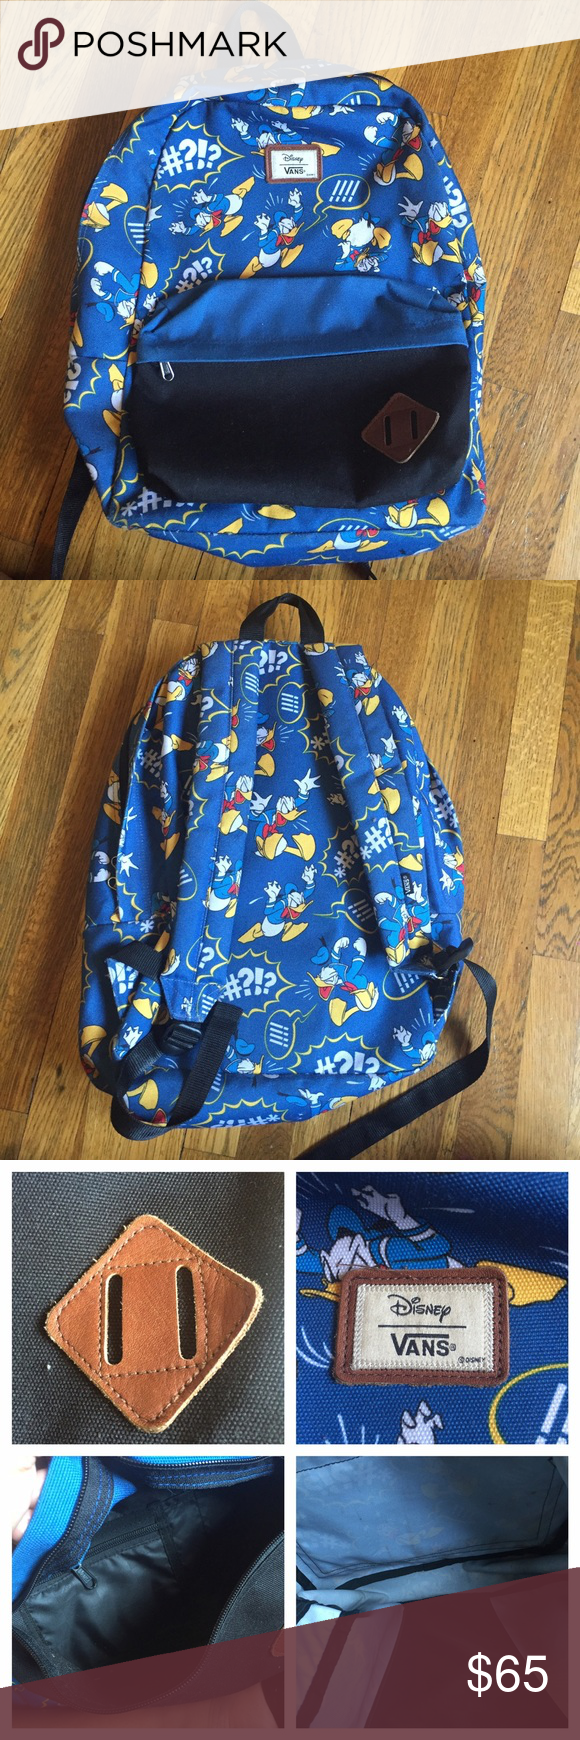 91cf1061a0b RARE Vans Old Skool Disney Donald Duck Backpack RARE. Sold out EVERYWHERE  except eBay (